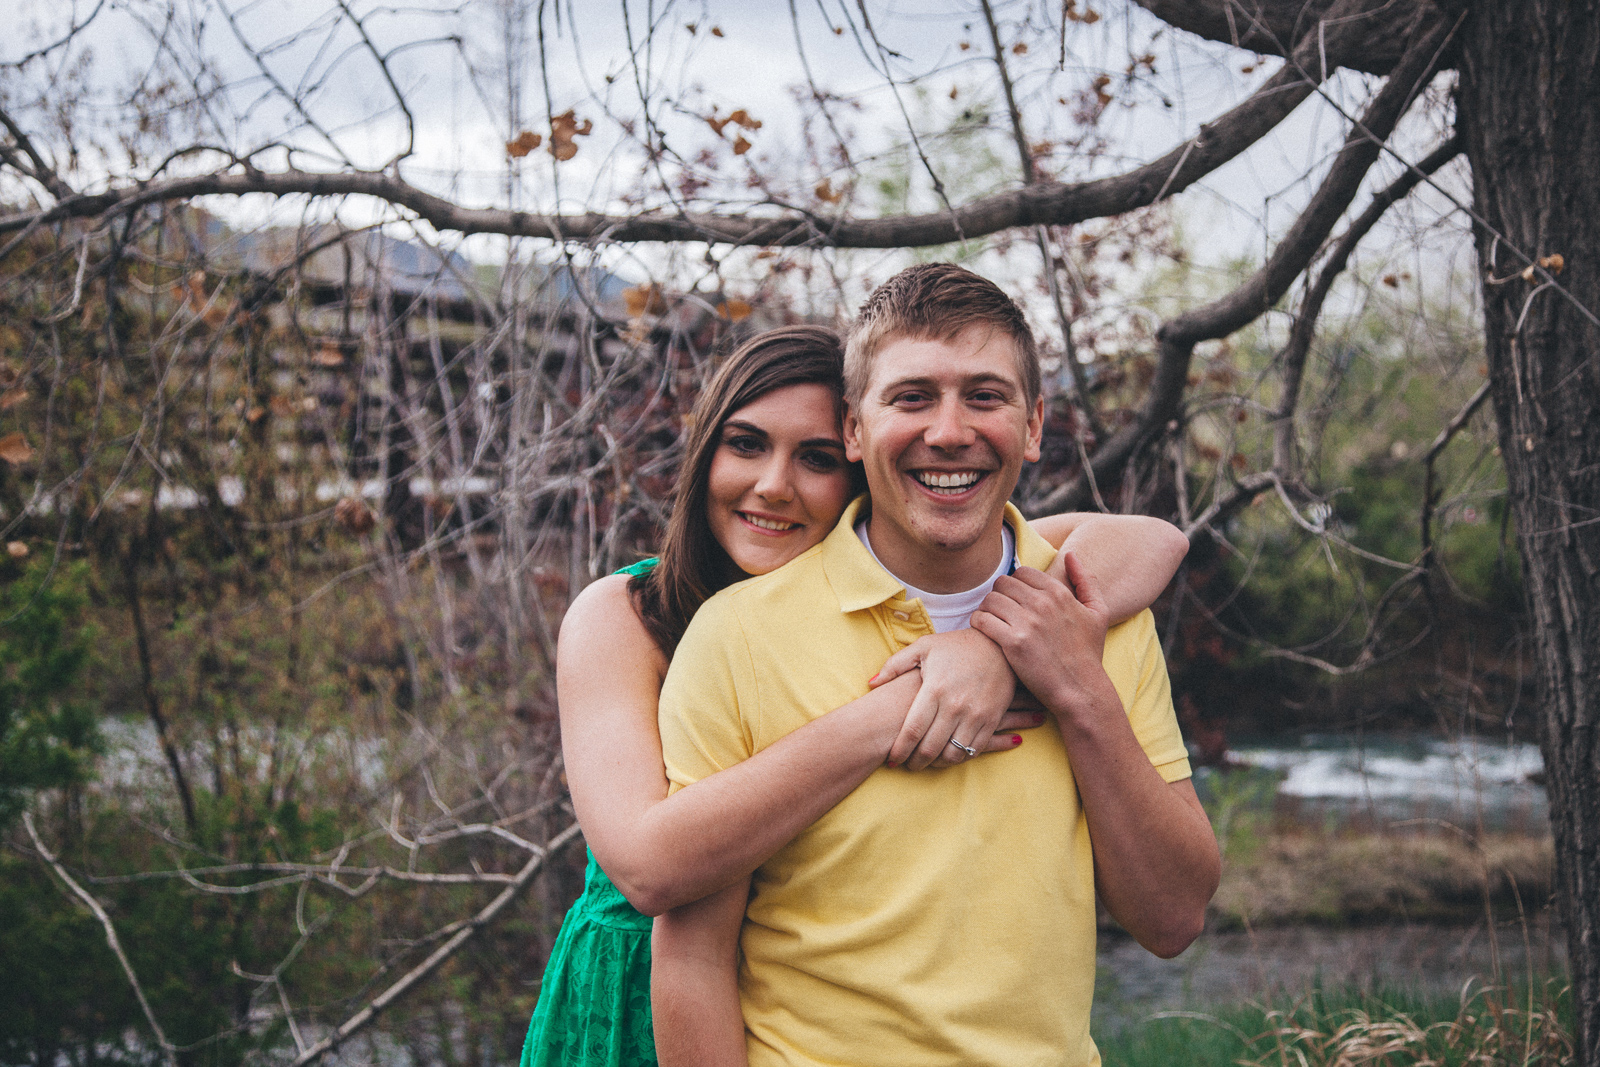 012-engagement-trees-fun-laughing-durango-colorado-farmington